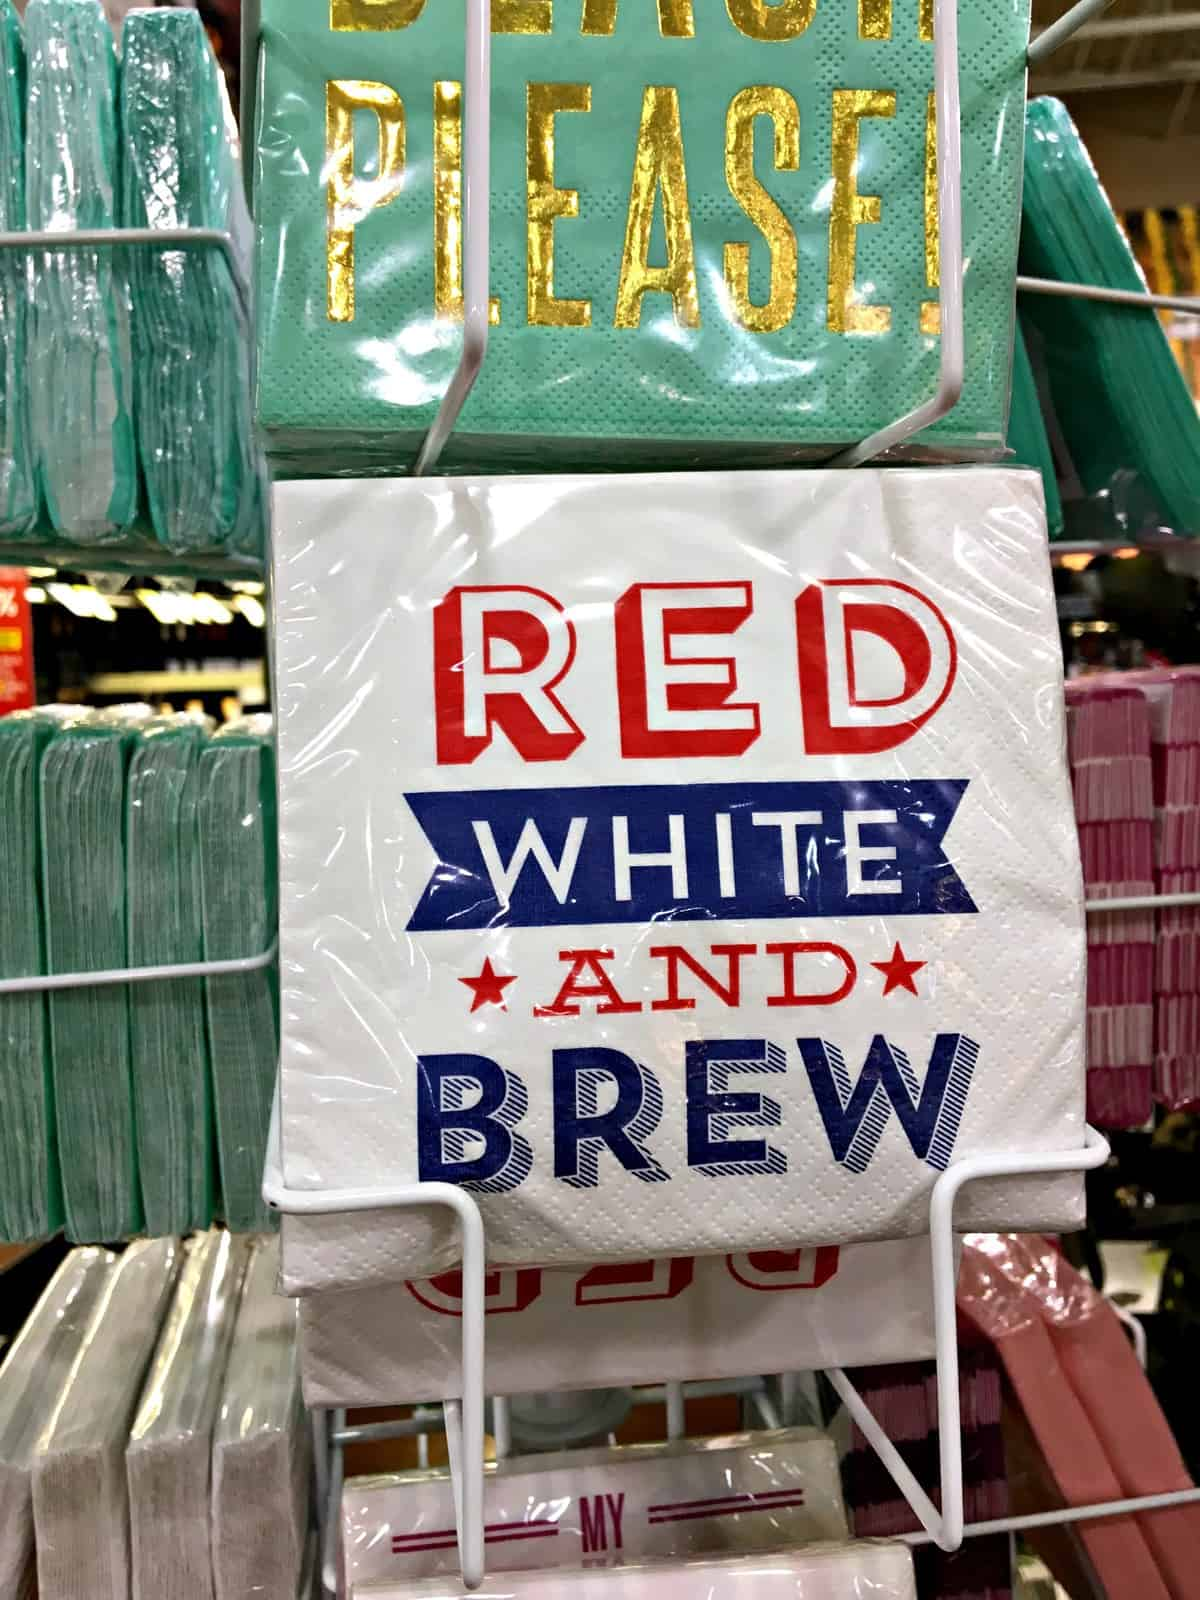 Pick up your 4th of July party napkins at Total Wine